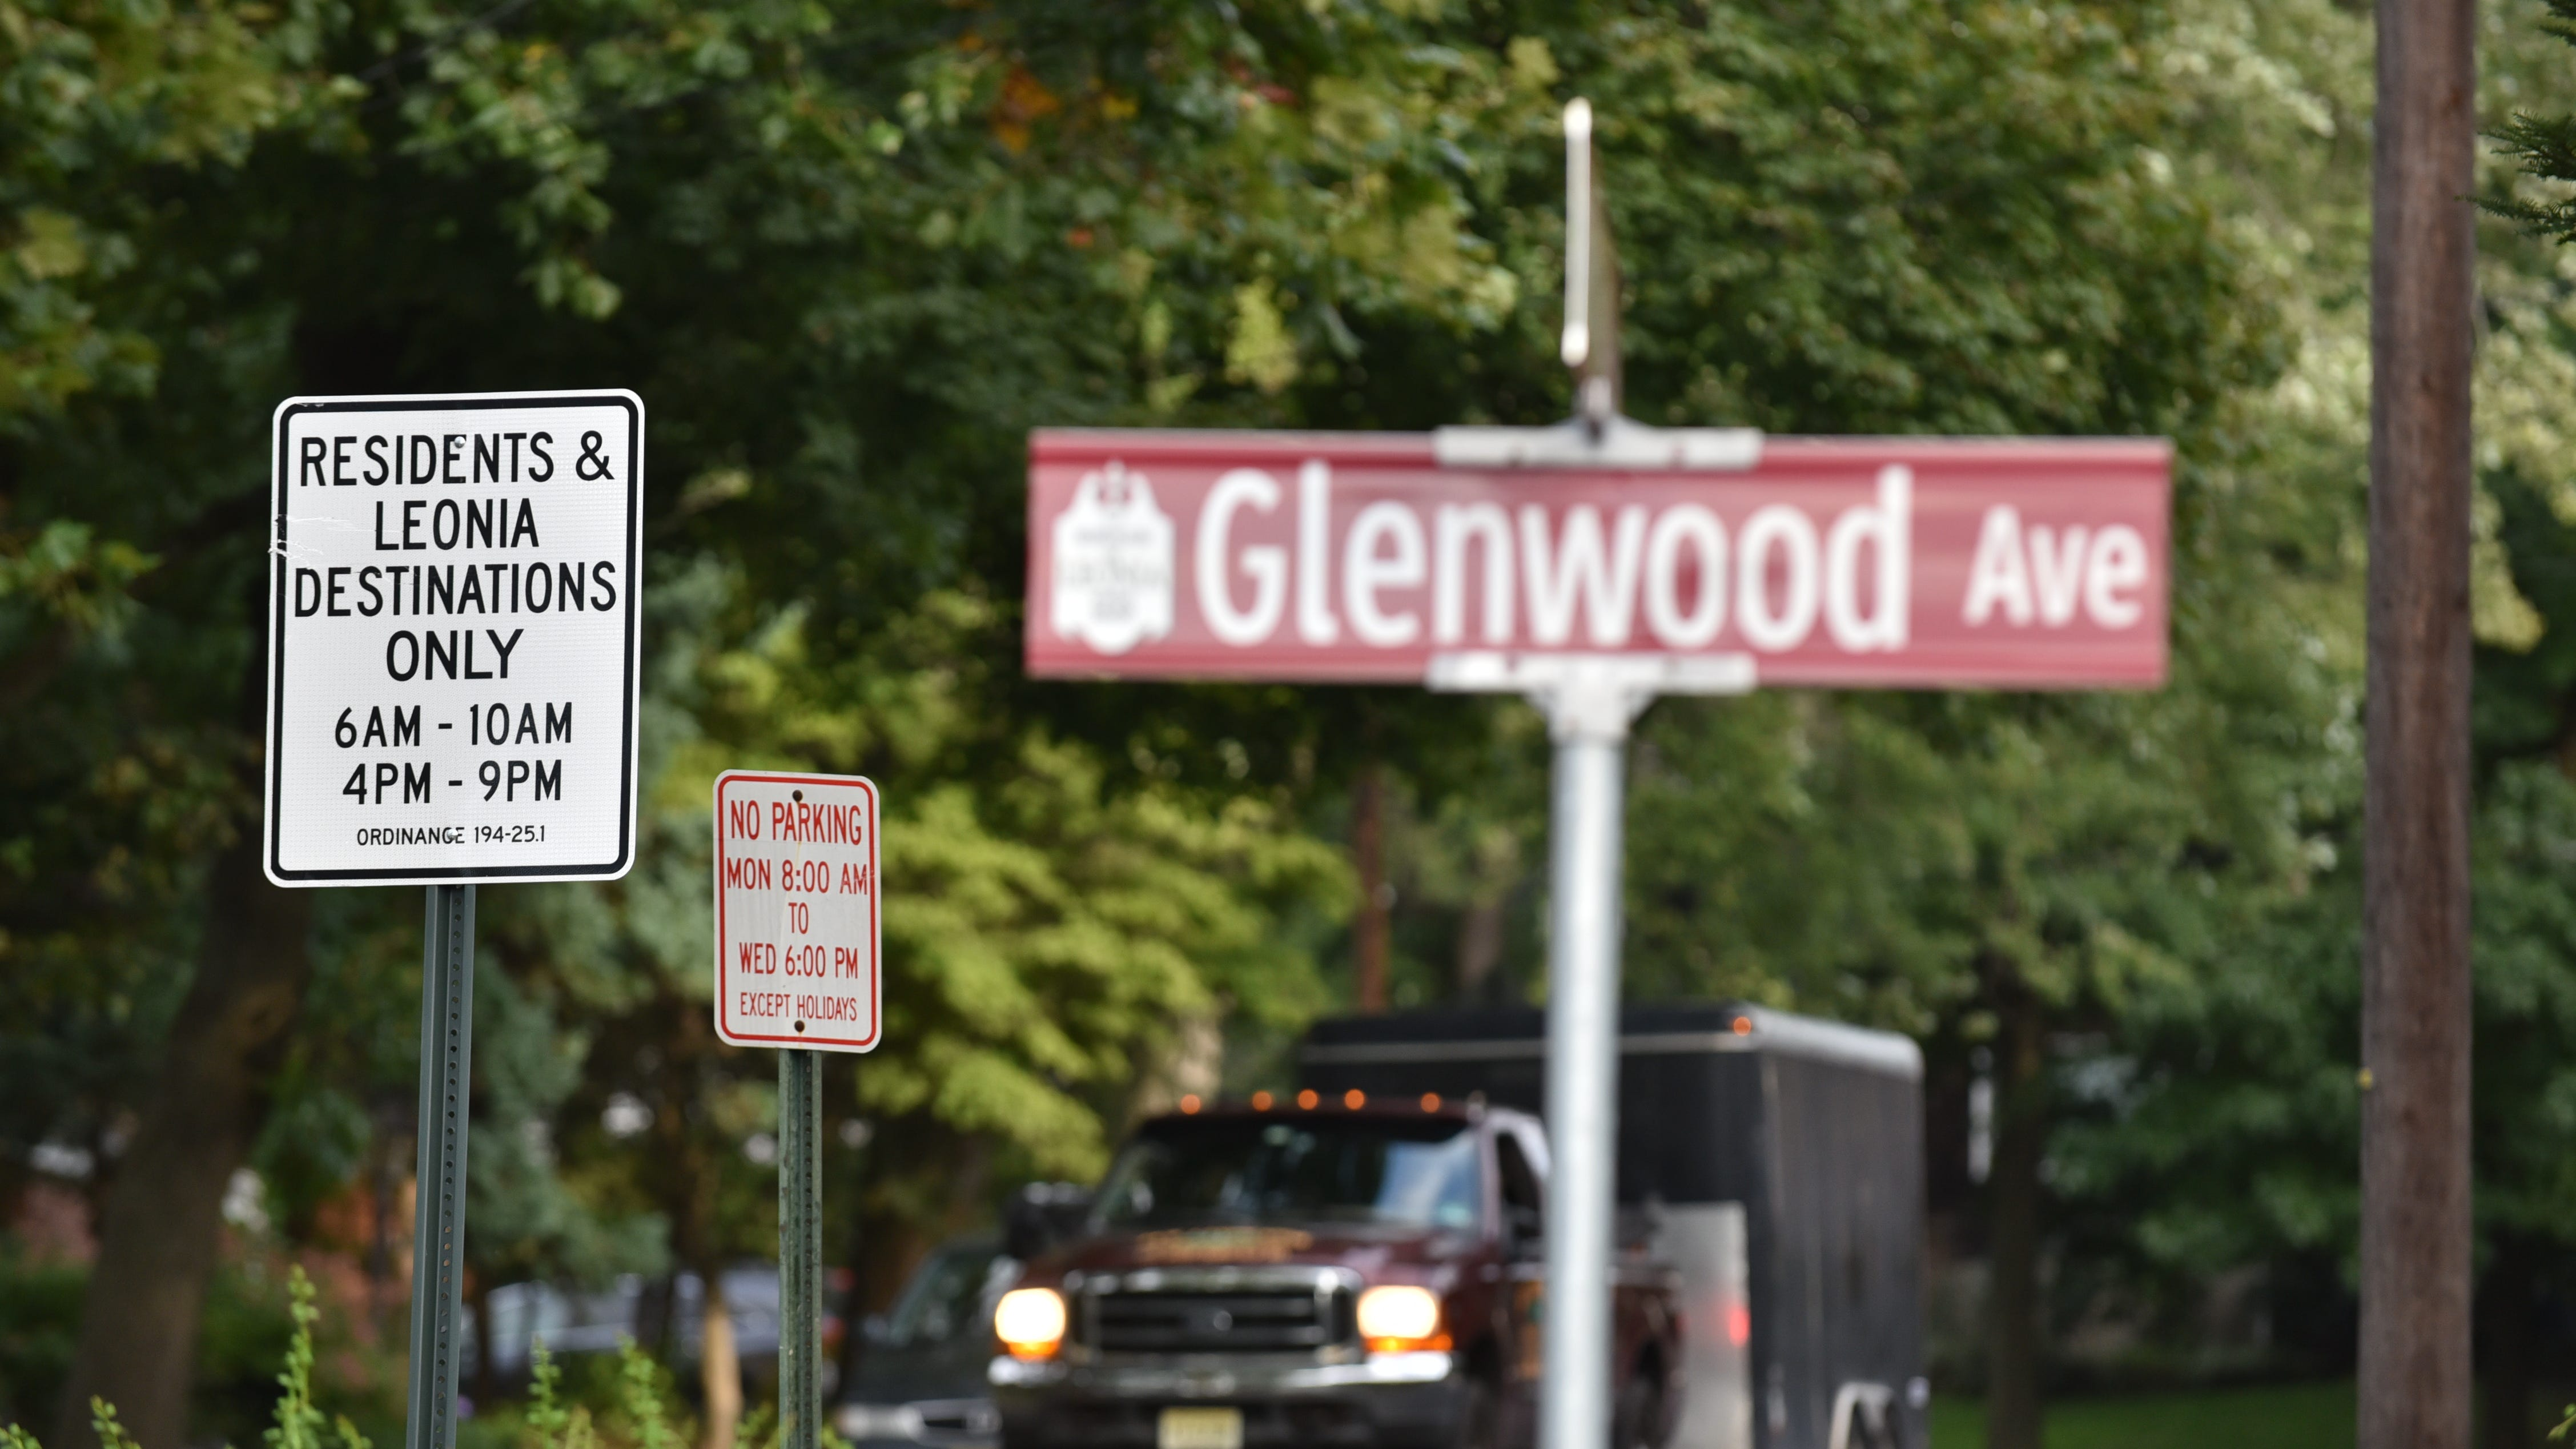 NJ attorney general mounting another legal challenge to Leonia's road closures